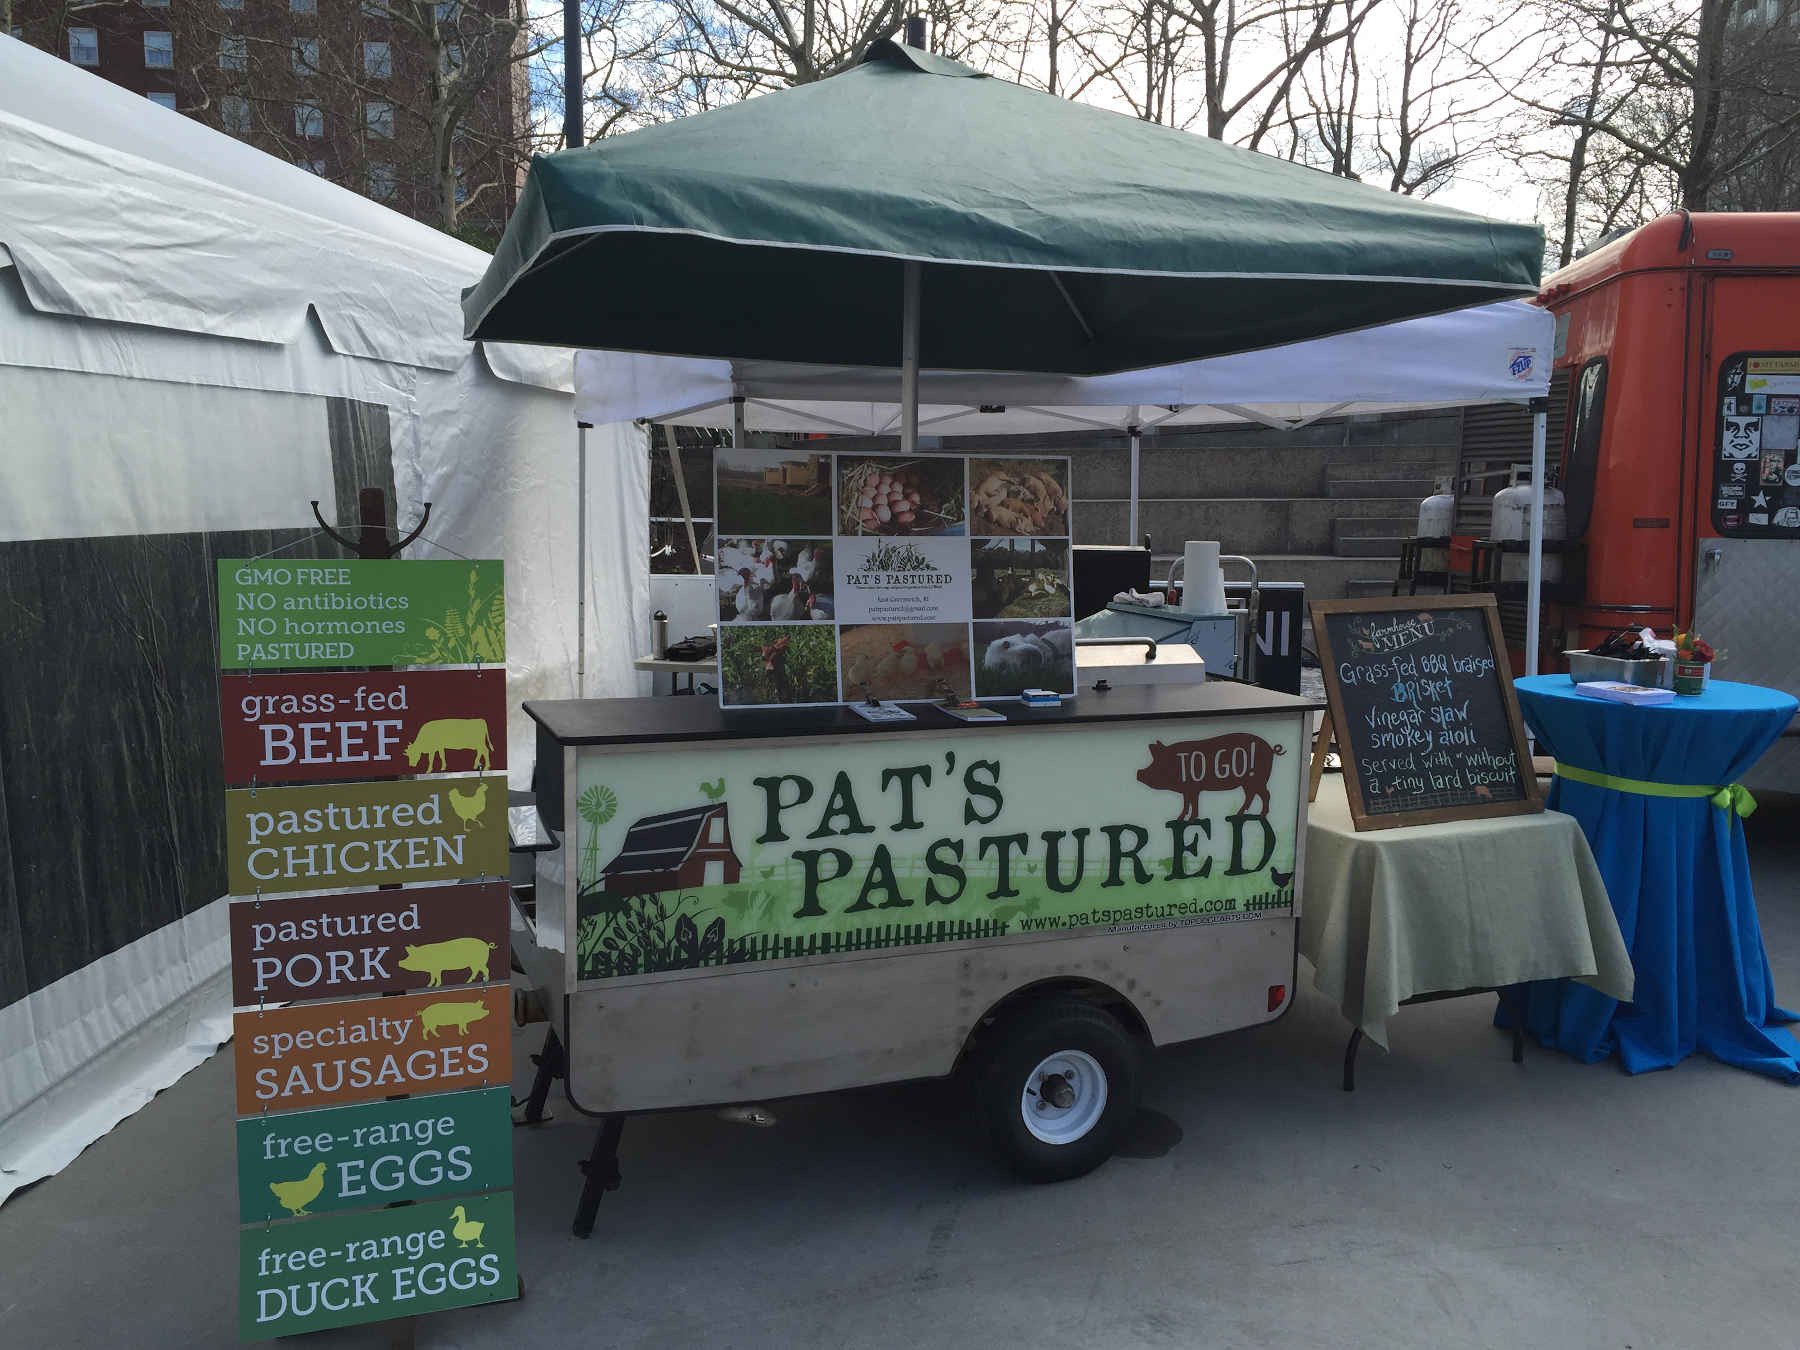 The Pat's Pastured food cart is back on May 8!